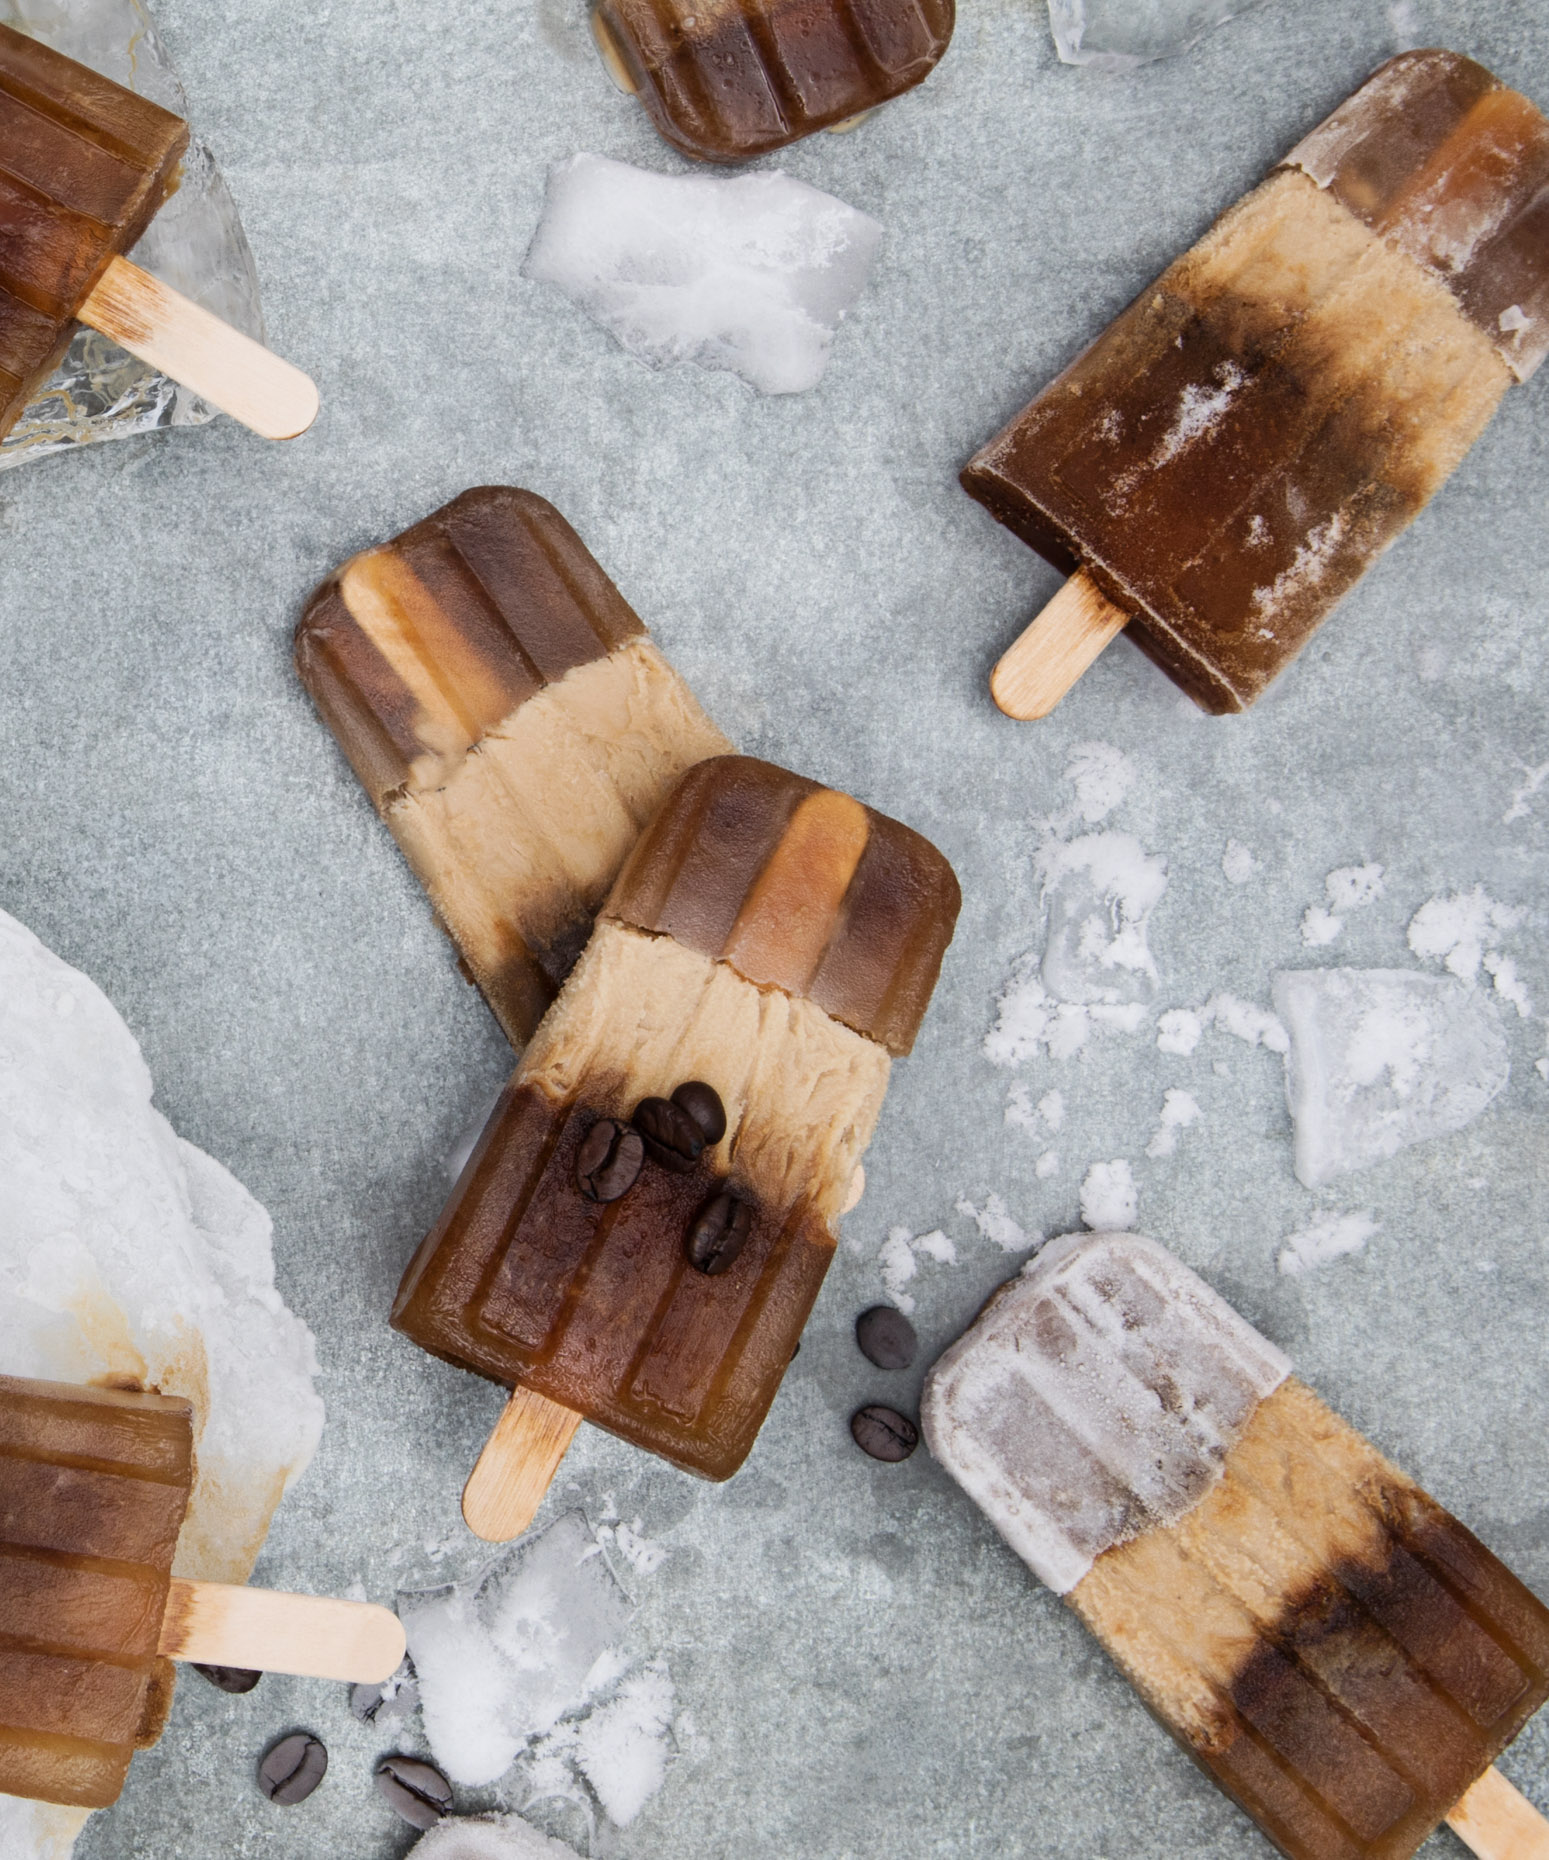 FluidFrame_food_photography_culinary_lifestyleTAS_S4_Popsicles_0066_edit